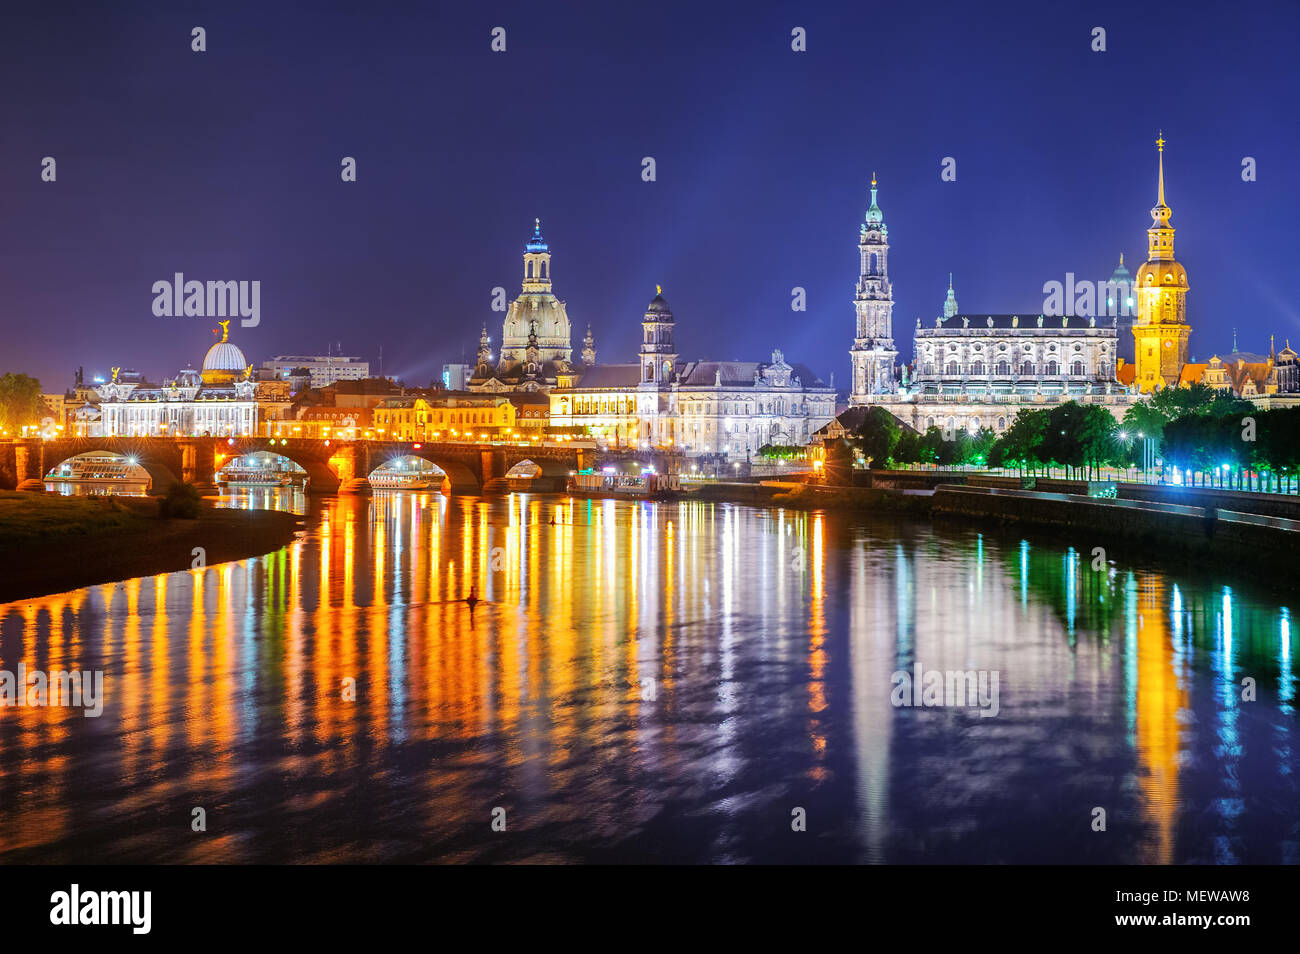 Panoramic view of the Dresden Old Town reflecting in Elbe river at late evening, Germany - Stock Image